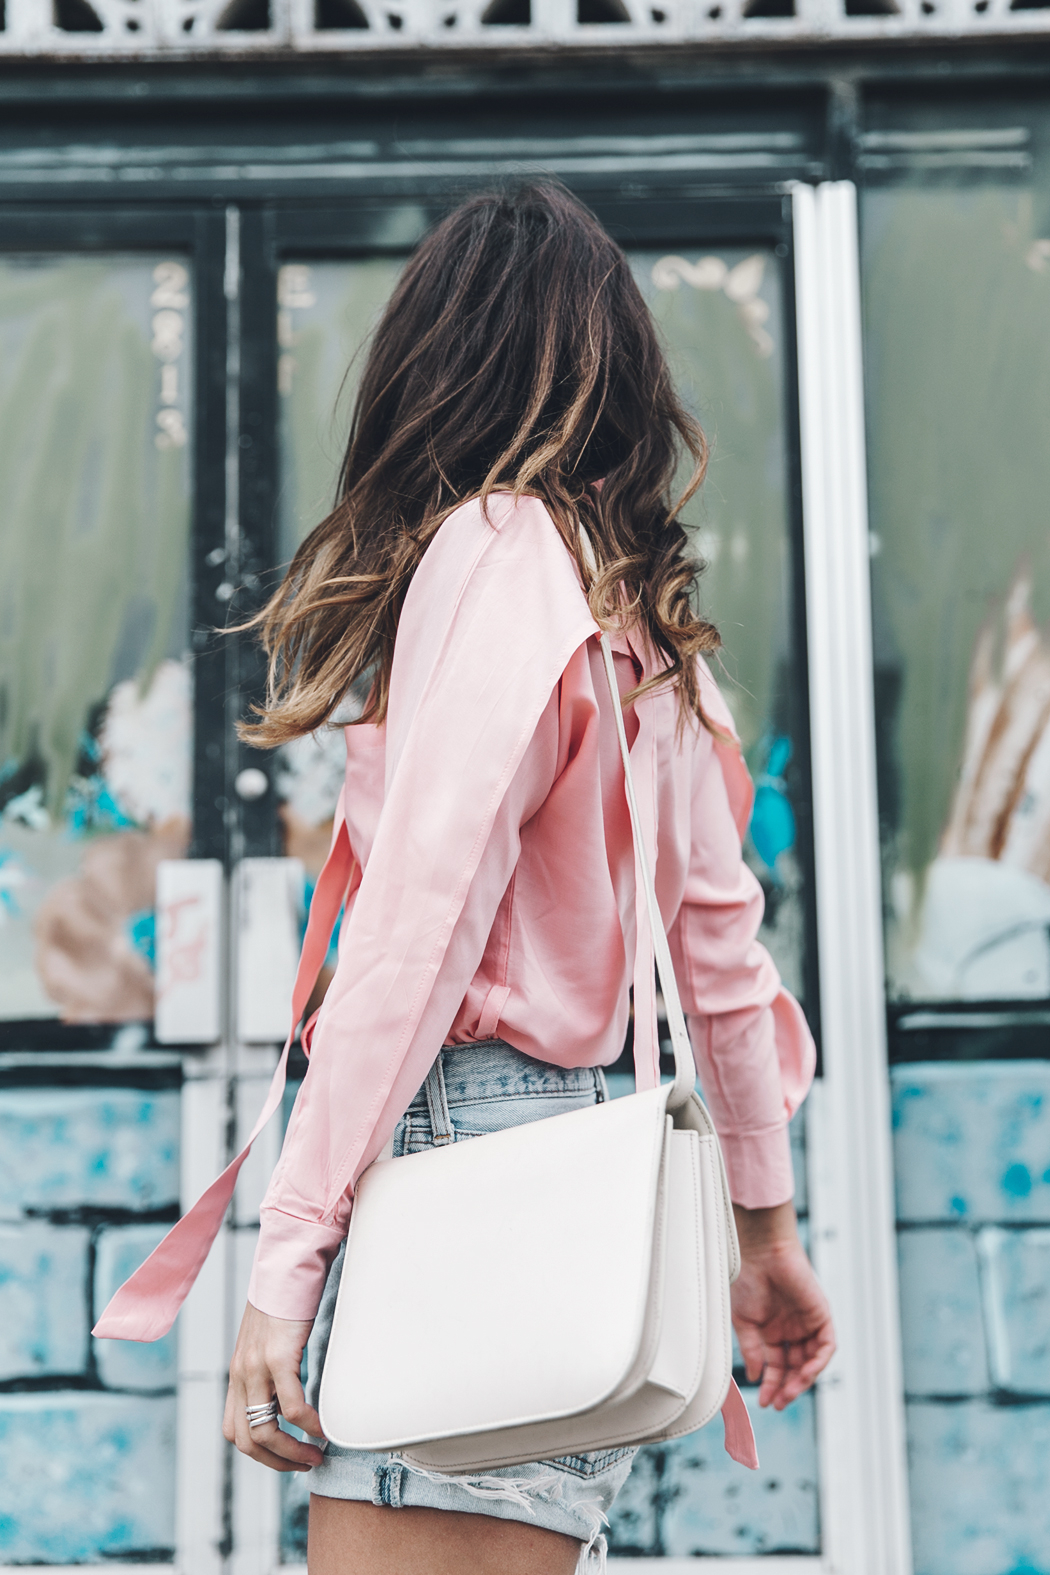 Goodnight_Macaroon-Levis_VIntage-Checked_Blouse-Pink_Shirt-Red_Heels-Marni_Sandals-Dallas-81